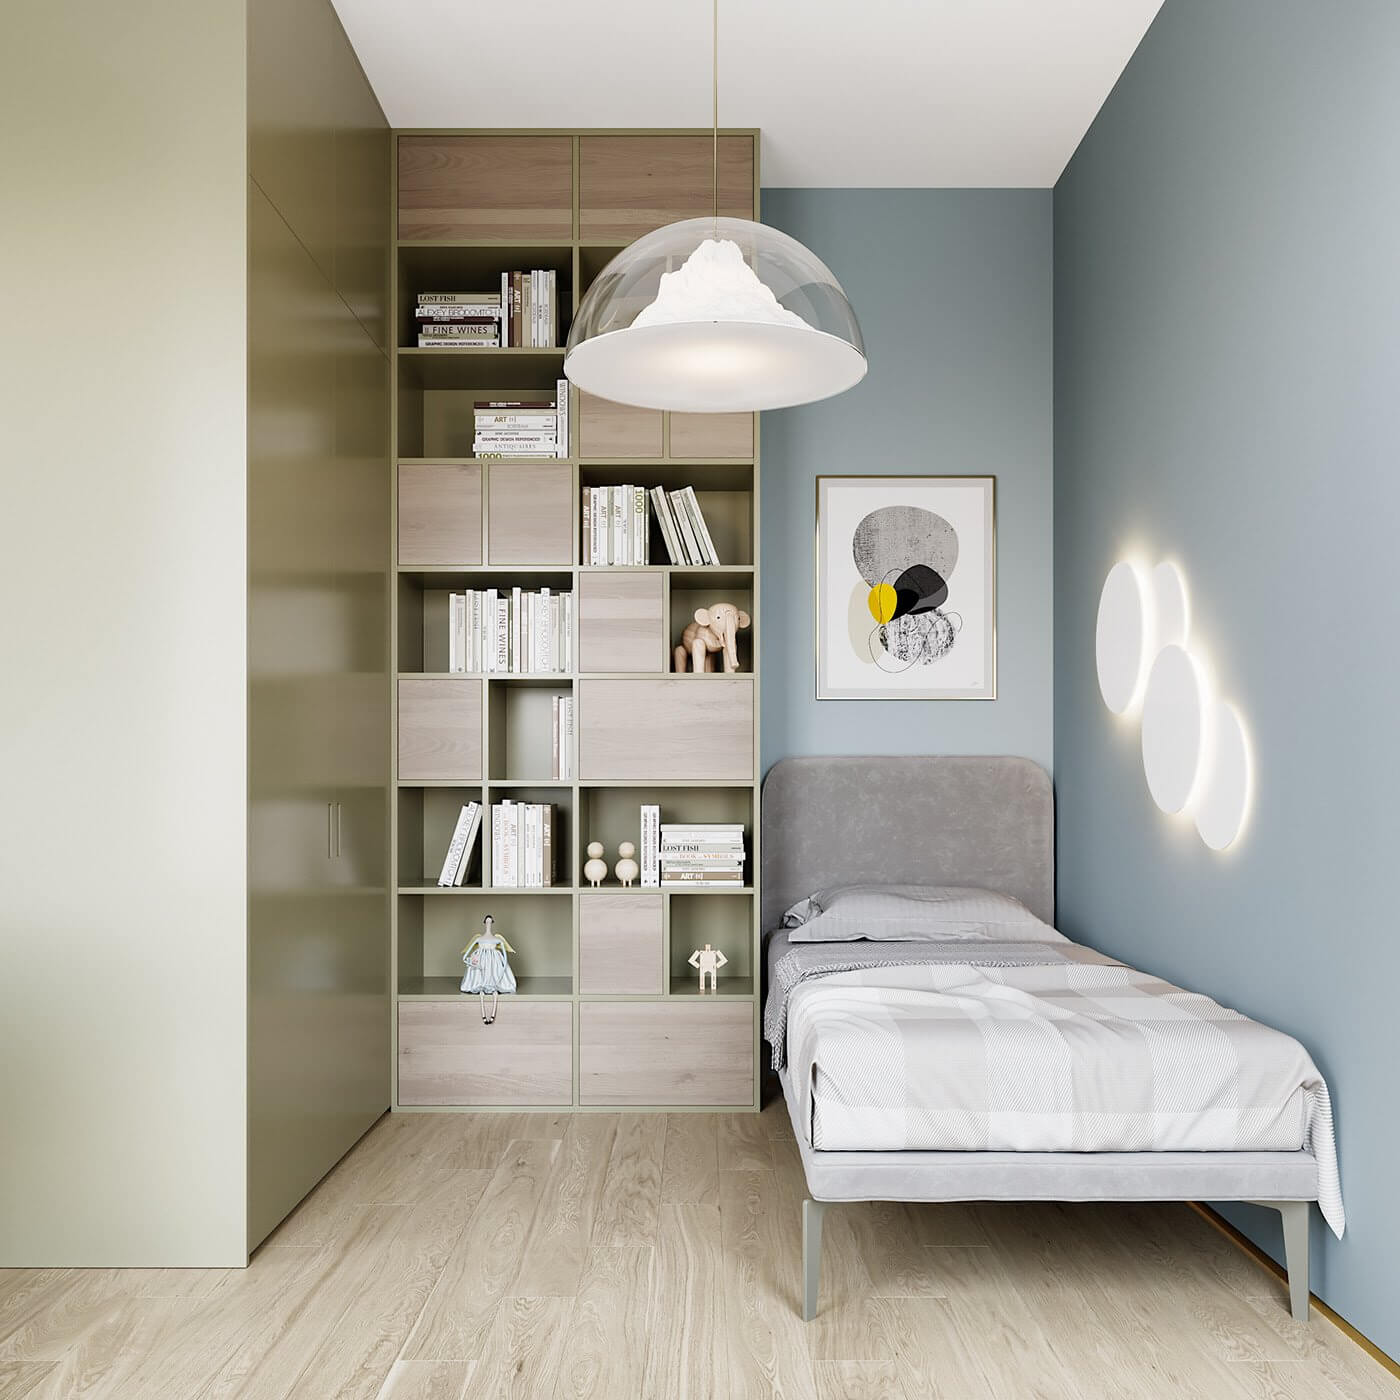 Green gold Apartment bedroom kids - cgi visualization